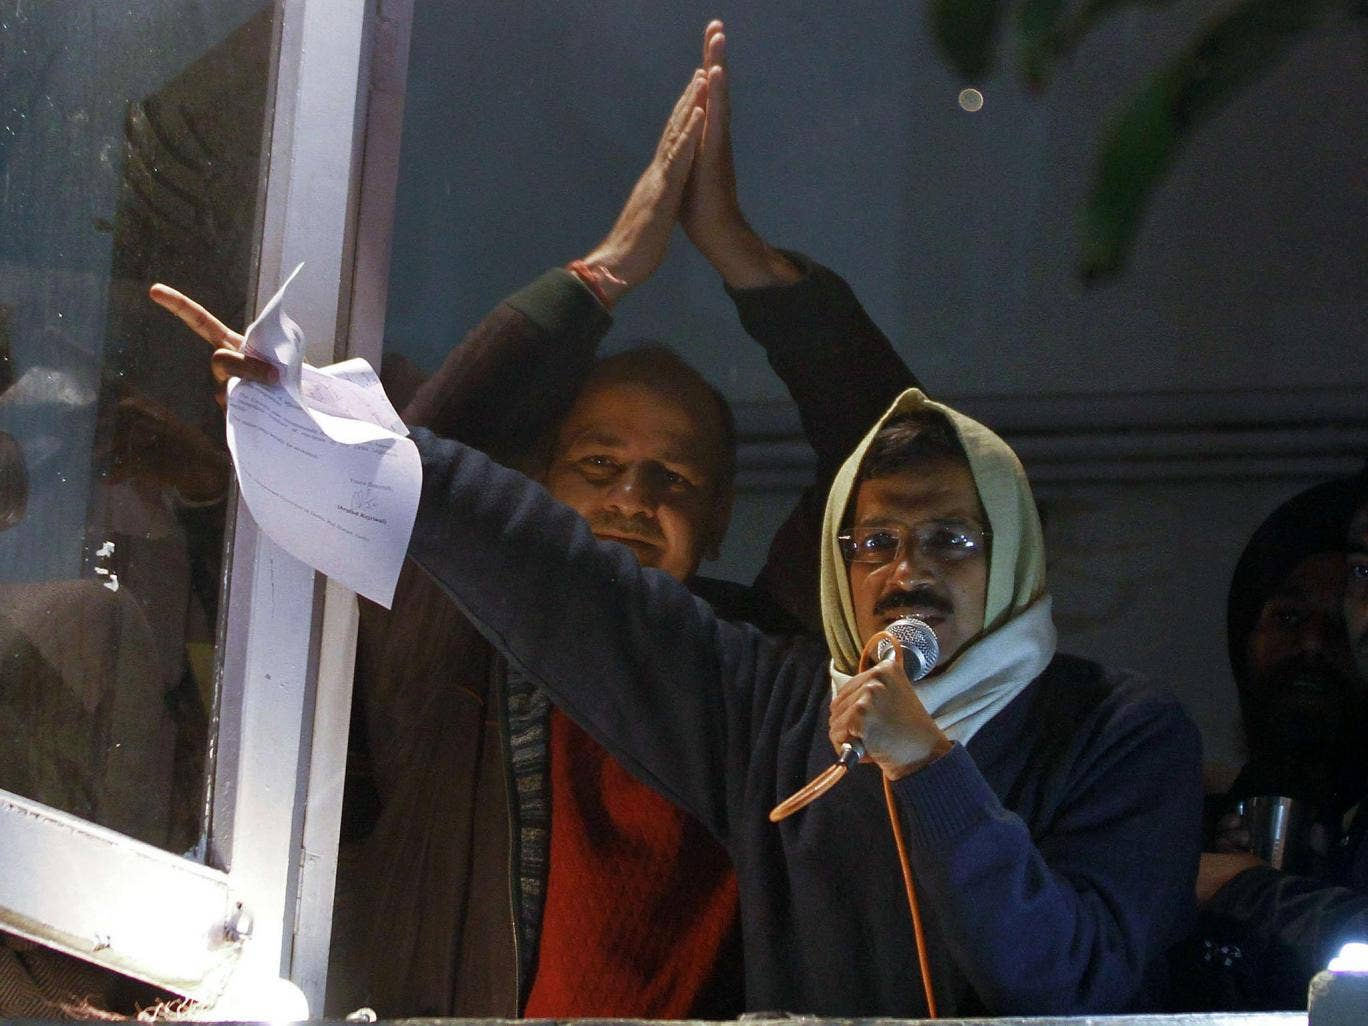 Delhi's Chief Minister Arvind Kejriwal waves his resignation letter as he addresses supporters at Aam Aadmi (Common Man) Party offices